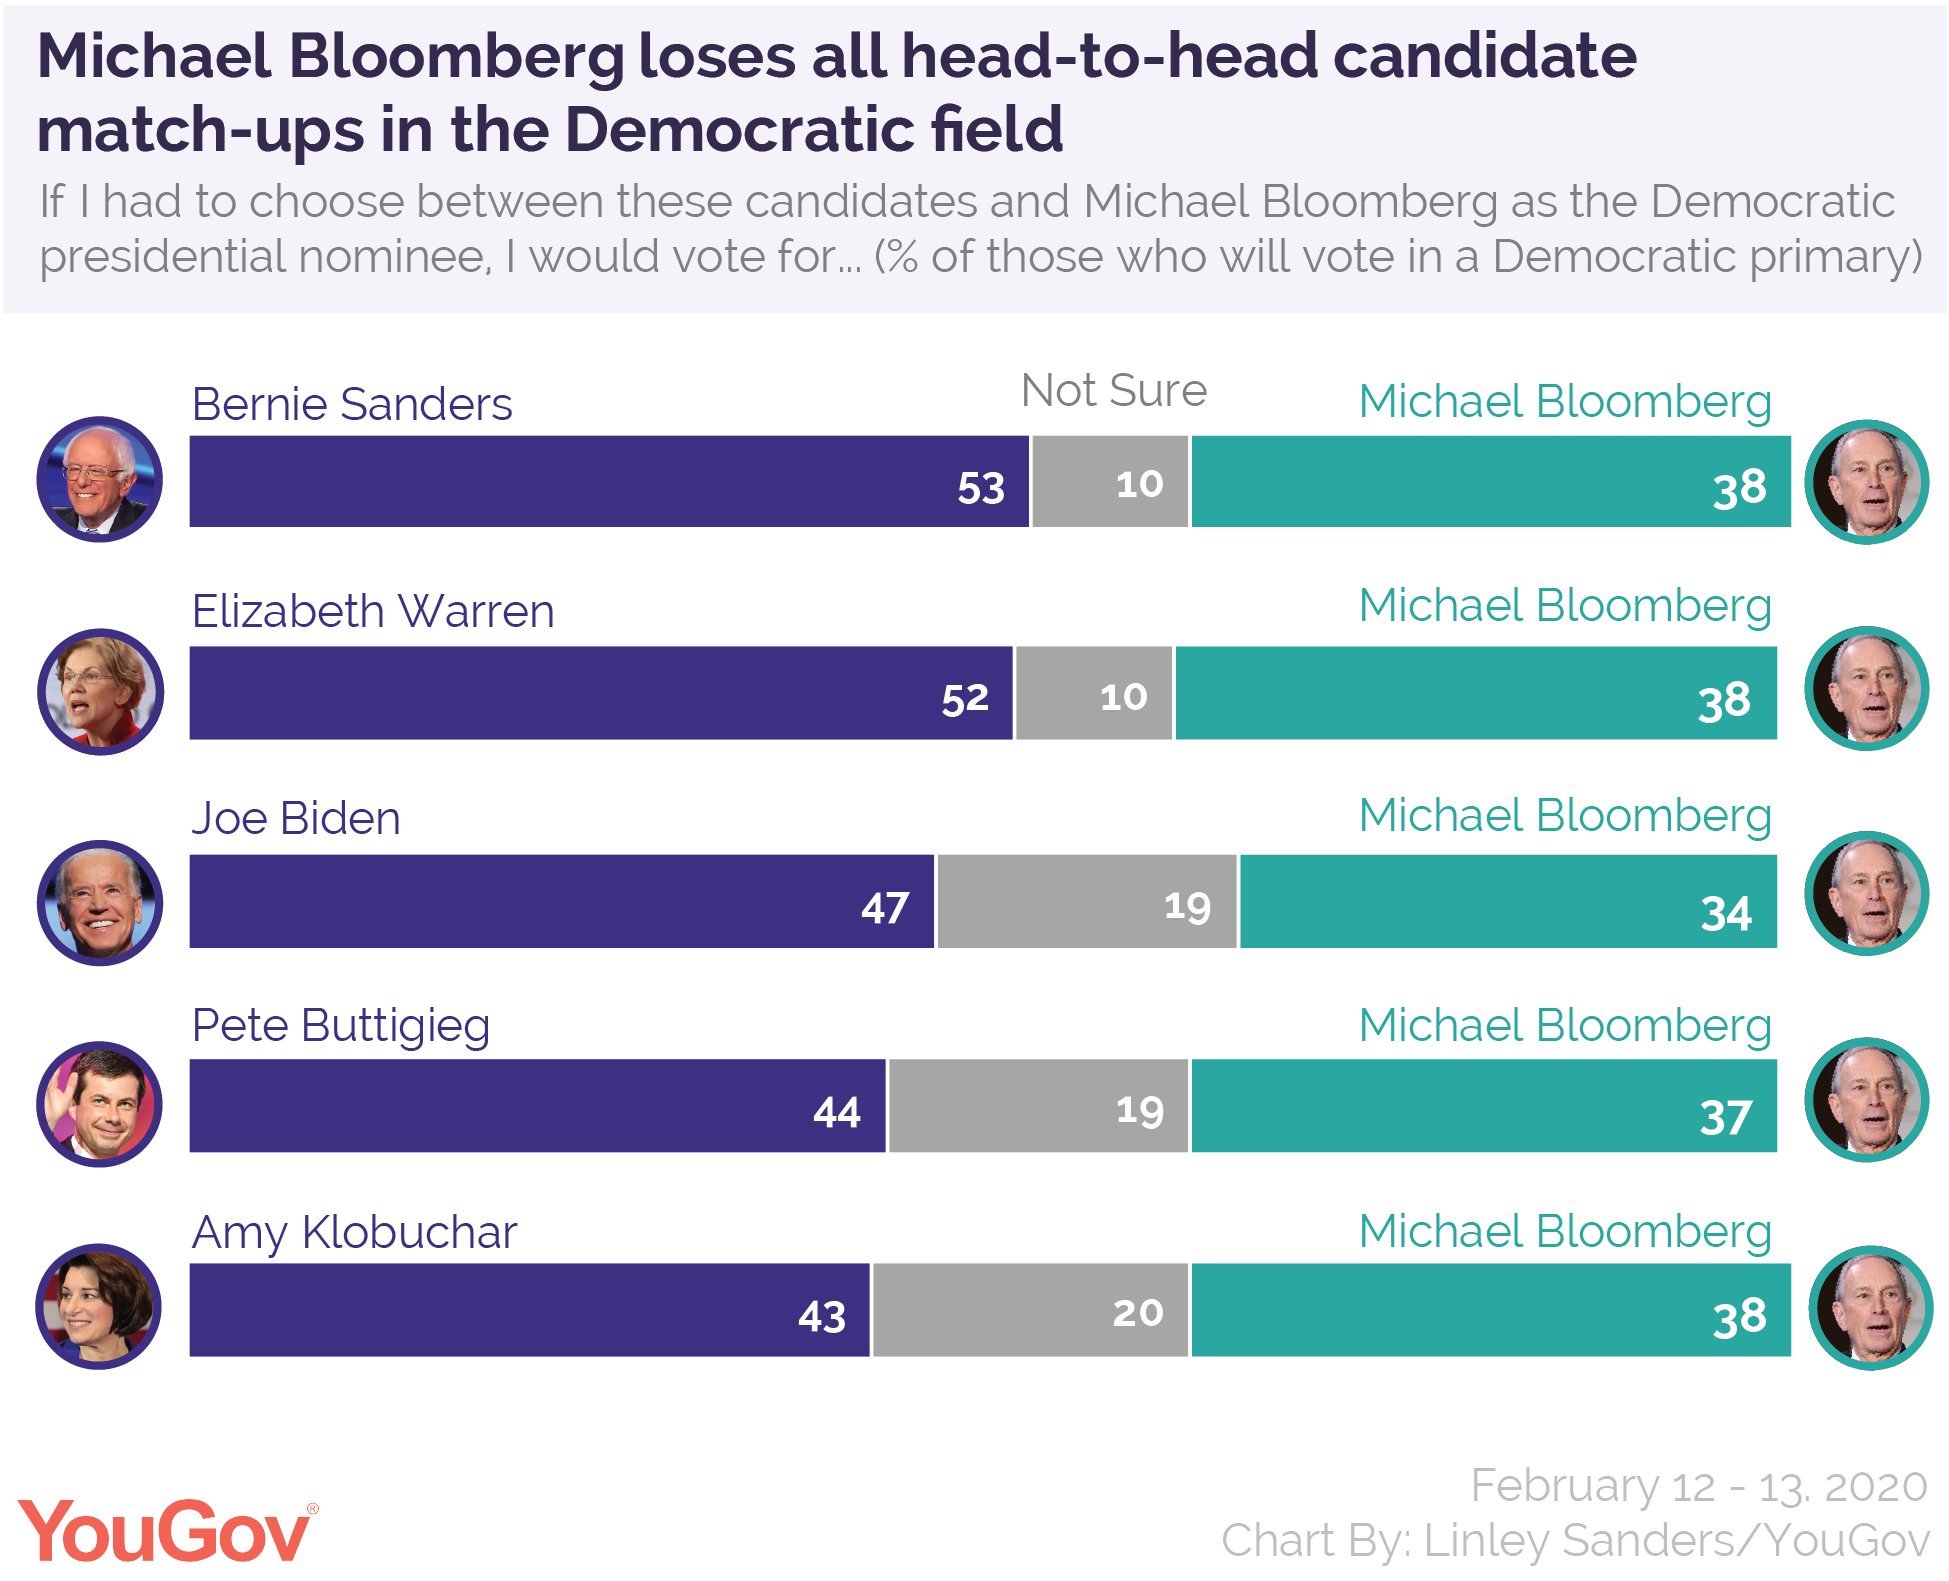 Michael Bloomberg loses all head-to-head candidate match-ups in the Democratic field